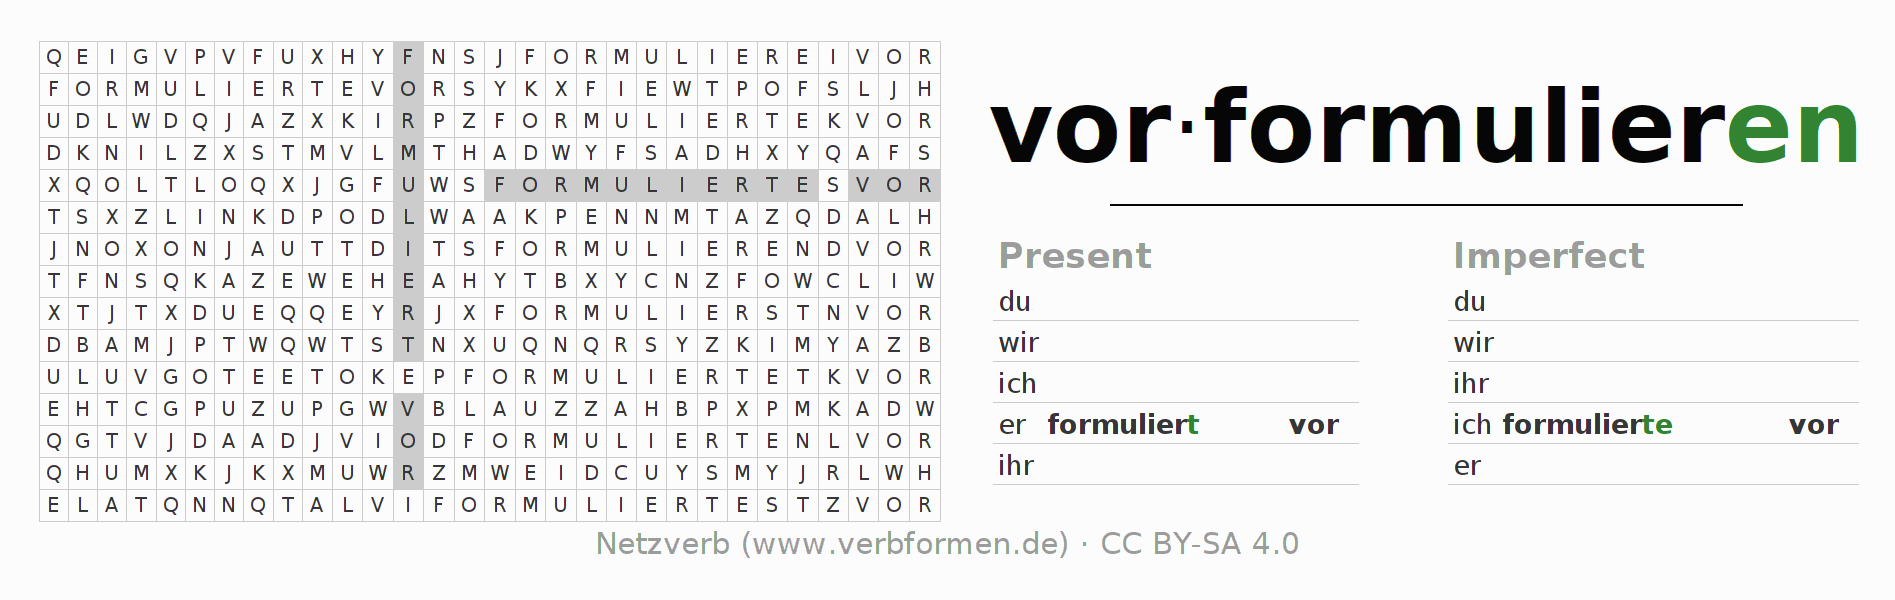 Word search puzzle for the conjugation of the verb vorformulieren